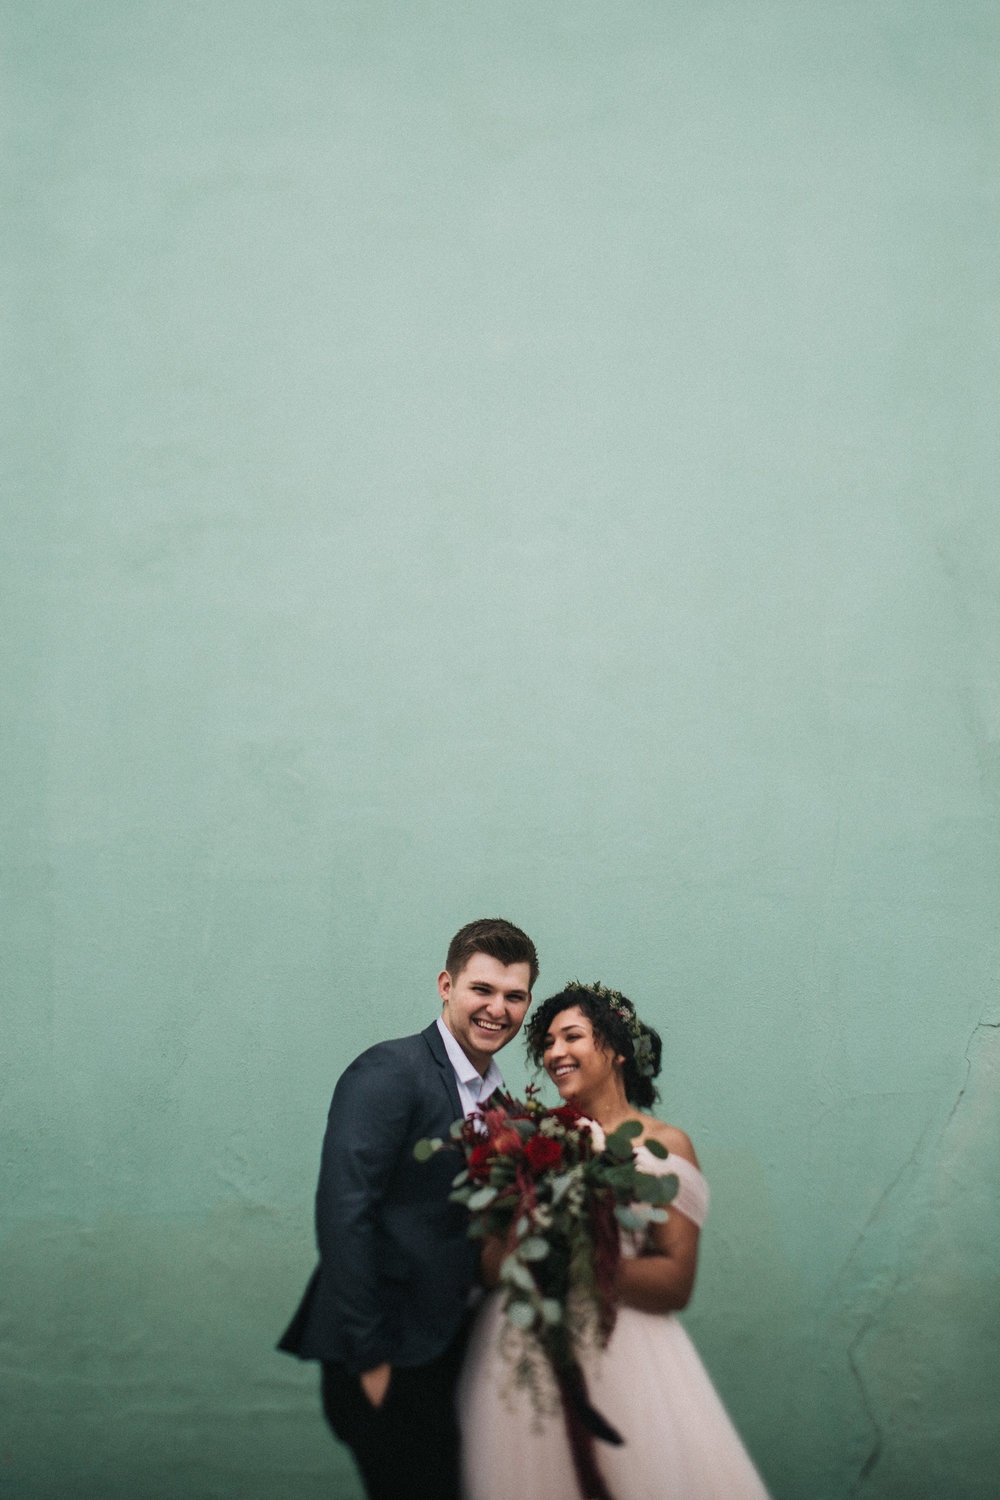 Anton and Katie Lison - LITERALLY THE BEST. Joe cares so much for his clients and you are getting a GREAT deal considering how hard he works and how amazing his work is. I couldn't say one bad thing about him and our wedding turned out rad.